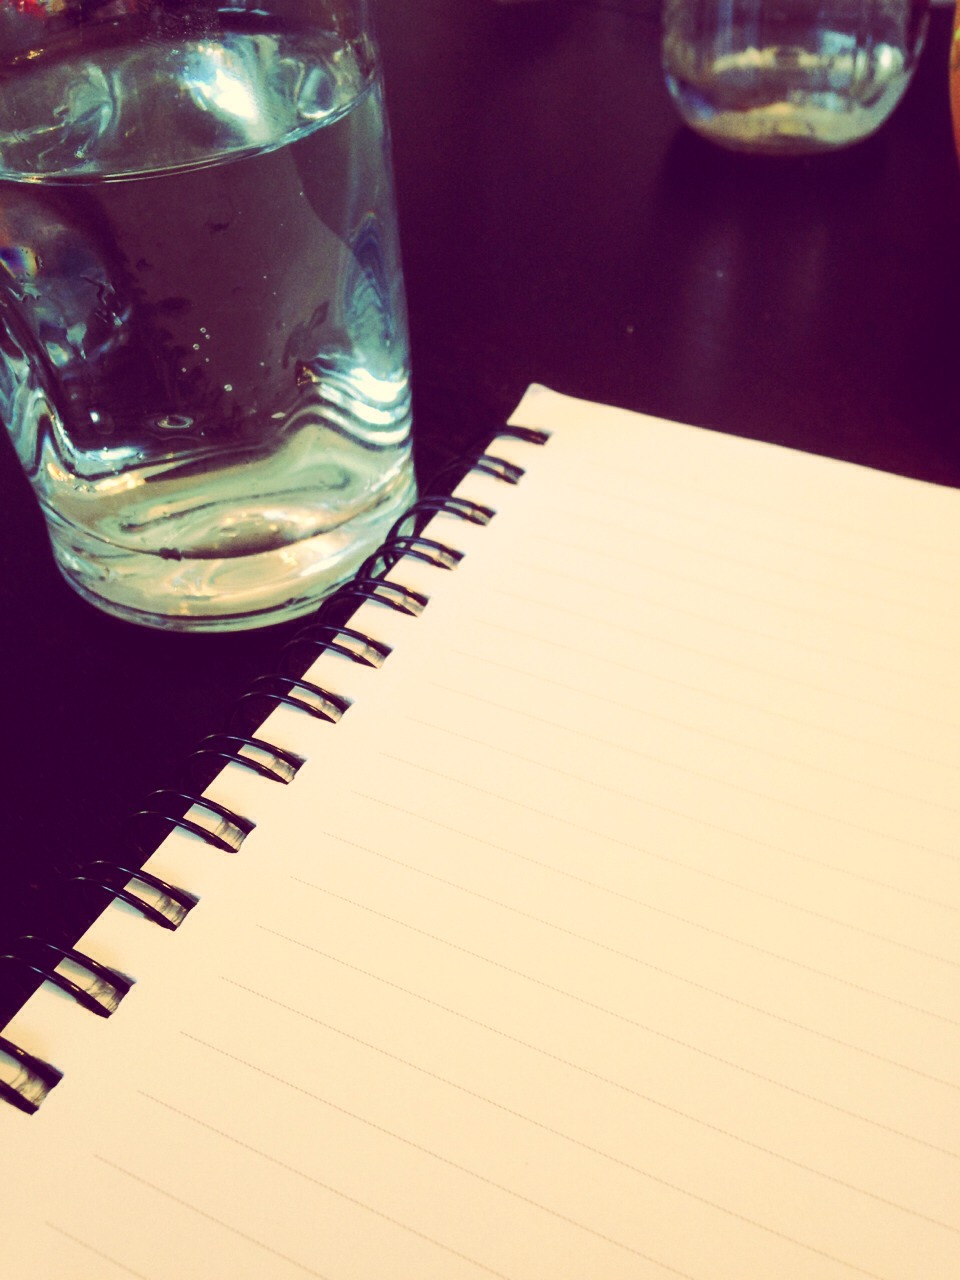 Bring a water bottle (or tea) and a notebook! Take notes if your in acting class to look over your thoughts later. Water is important for your voice help project and get as much volume as you need.